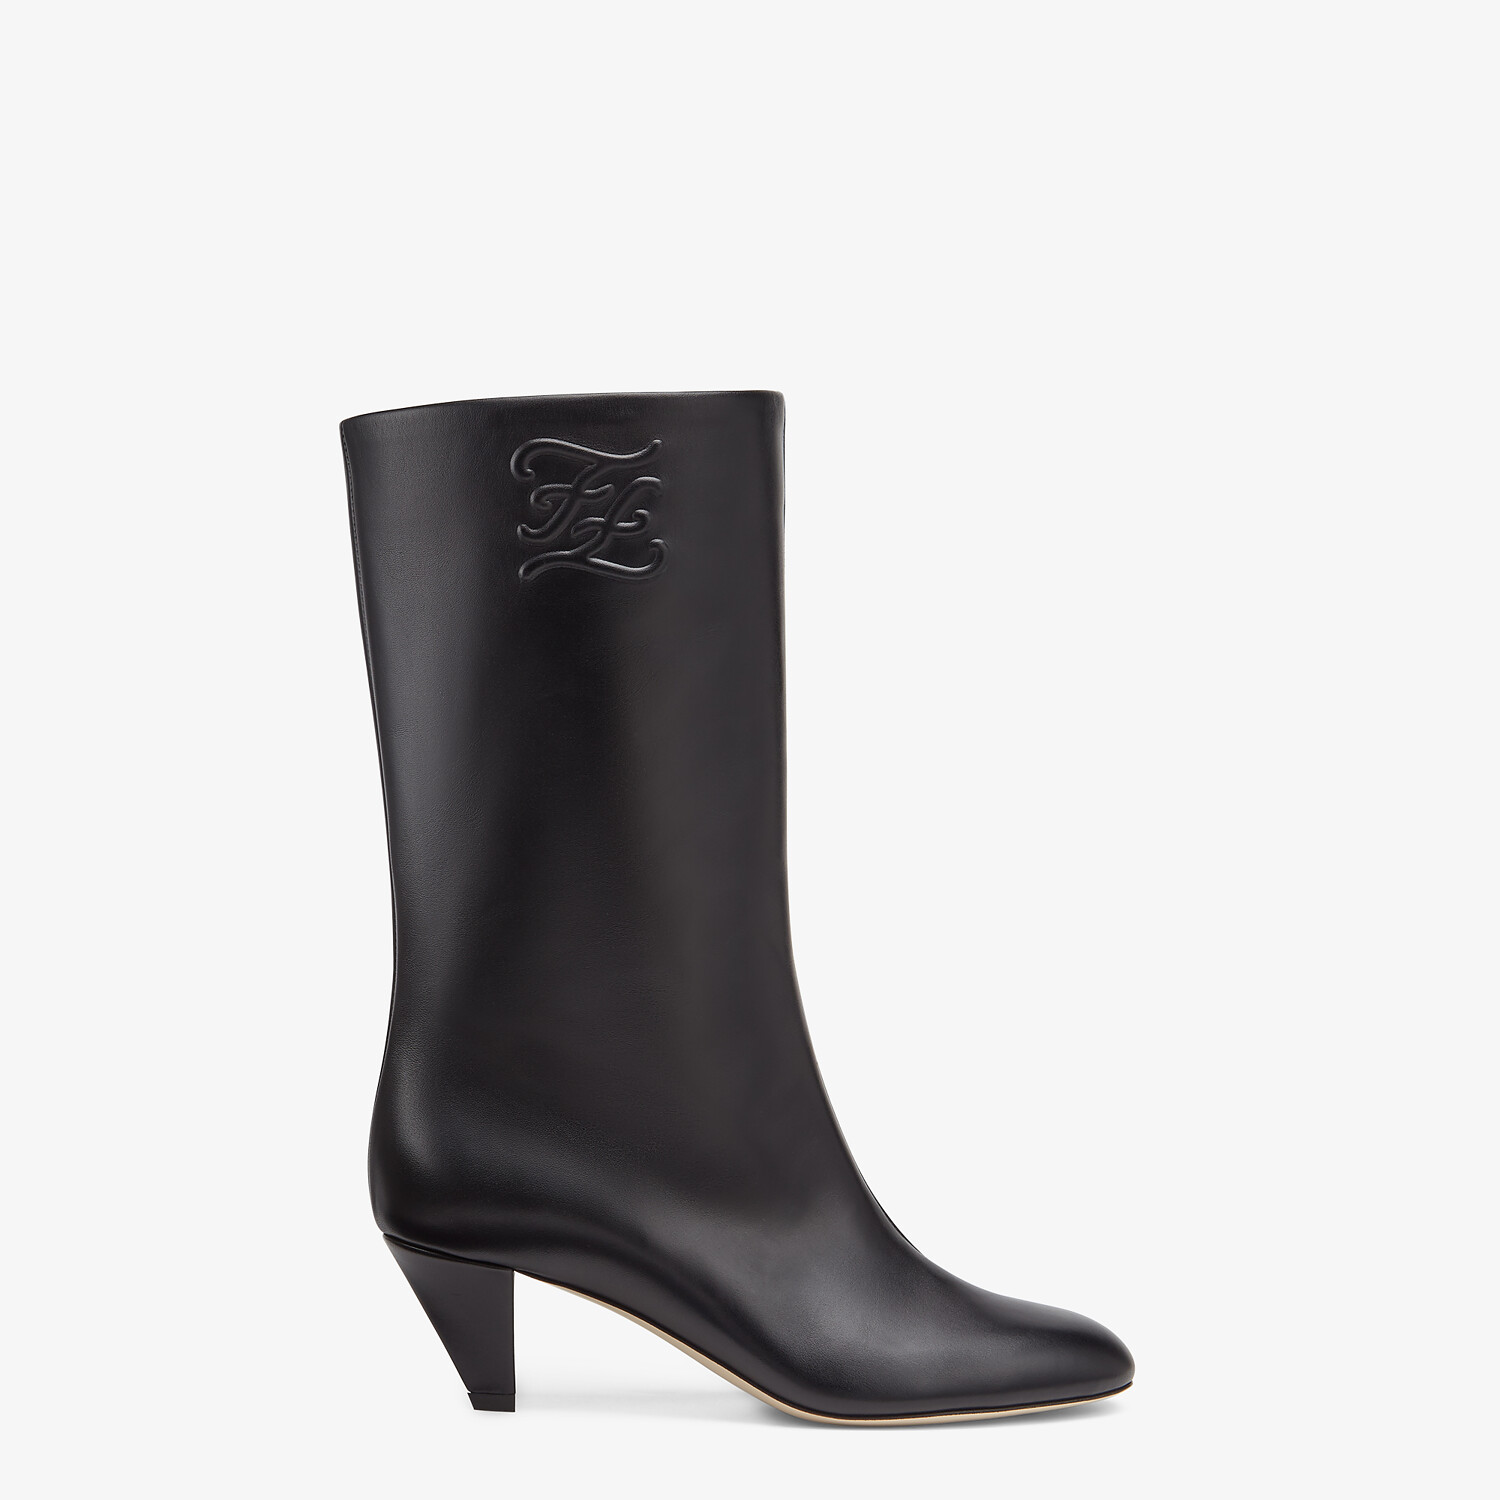 FENDI KARLIGRAPHY - Black leather boots with medium heel - view 1 detail